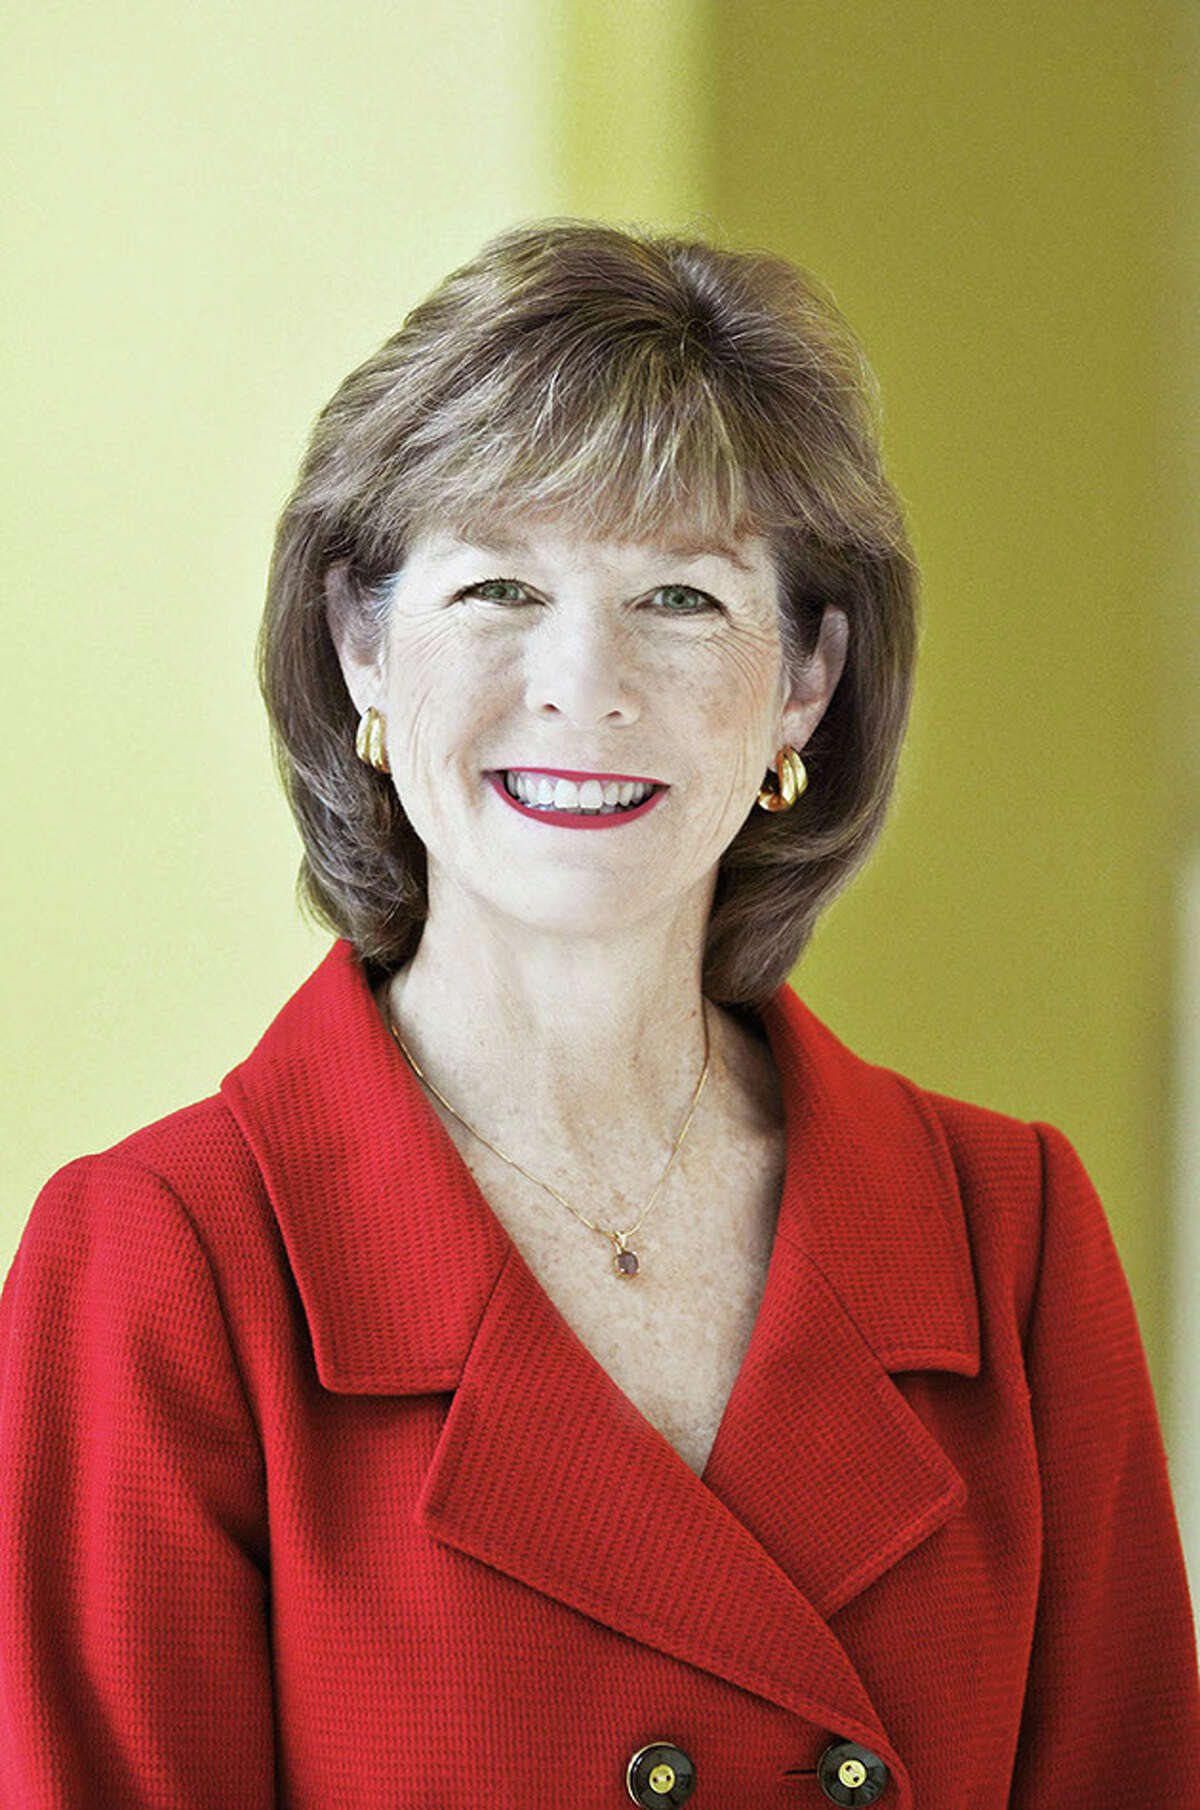 Susan Blaney, MD Specialty:Pediatric Hematology-Oncology Hospital:Texas Children's Hospital